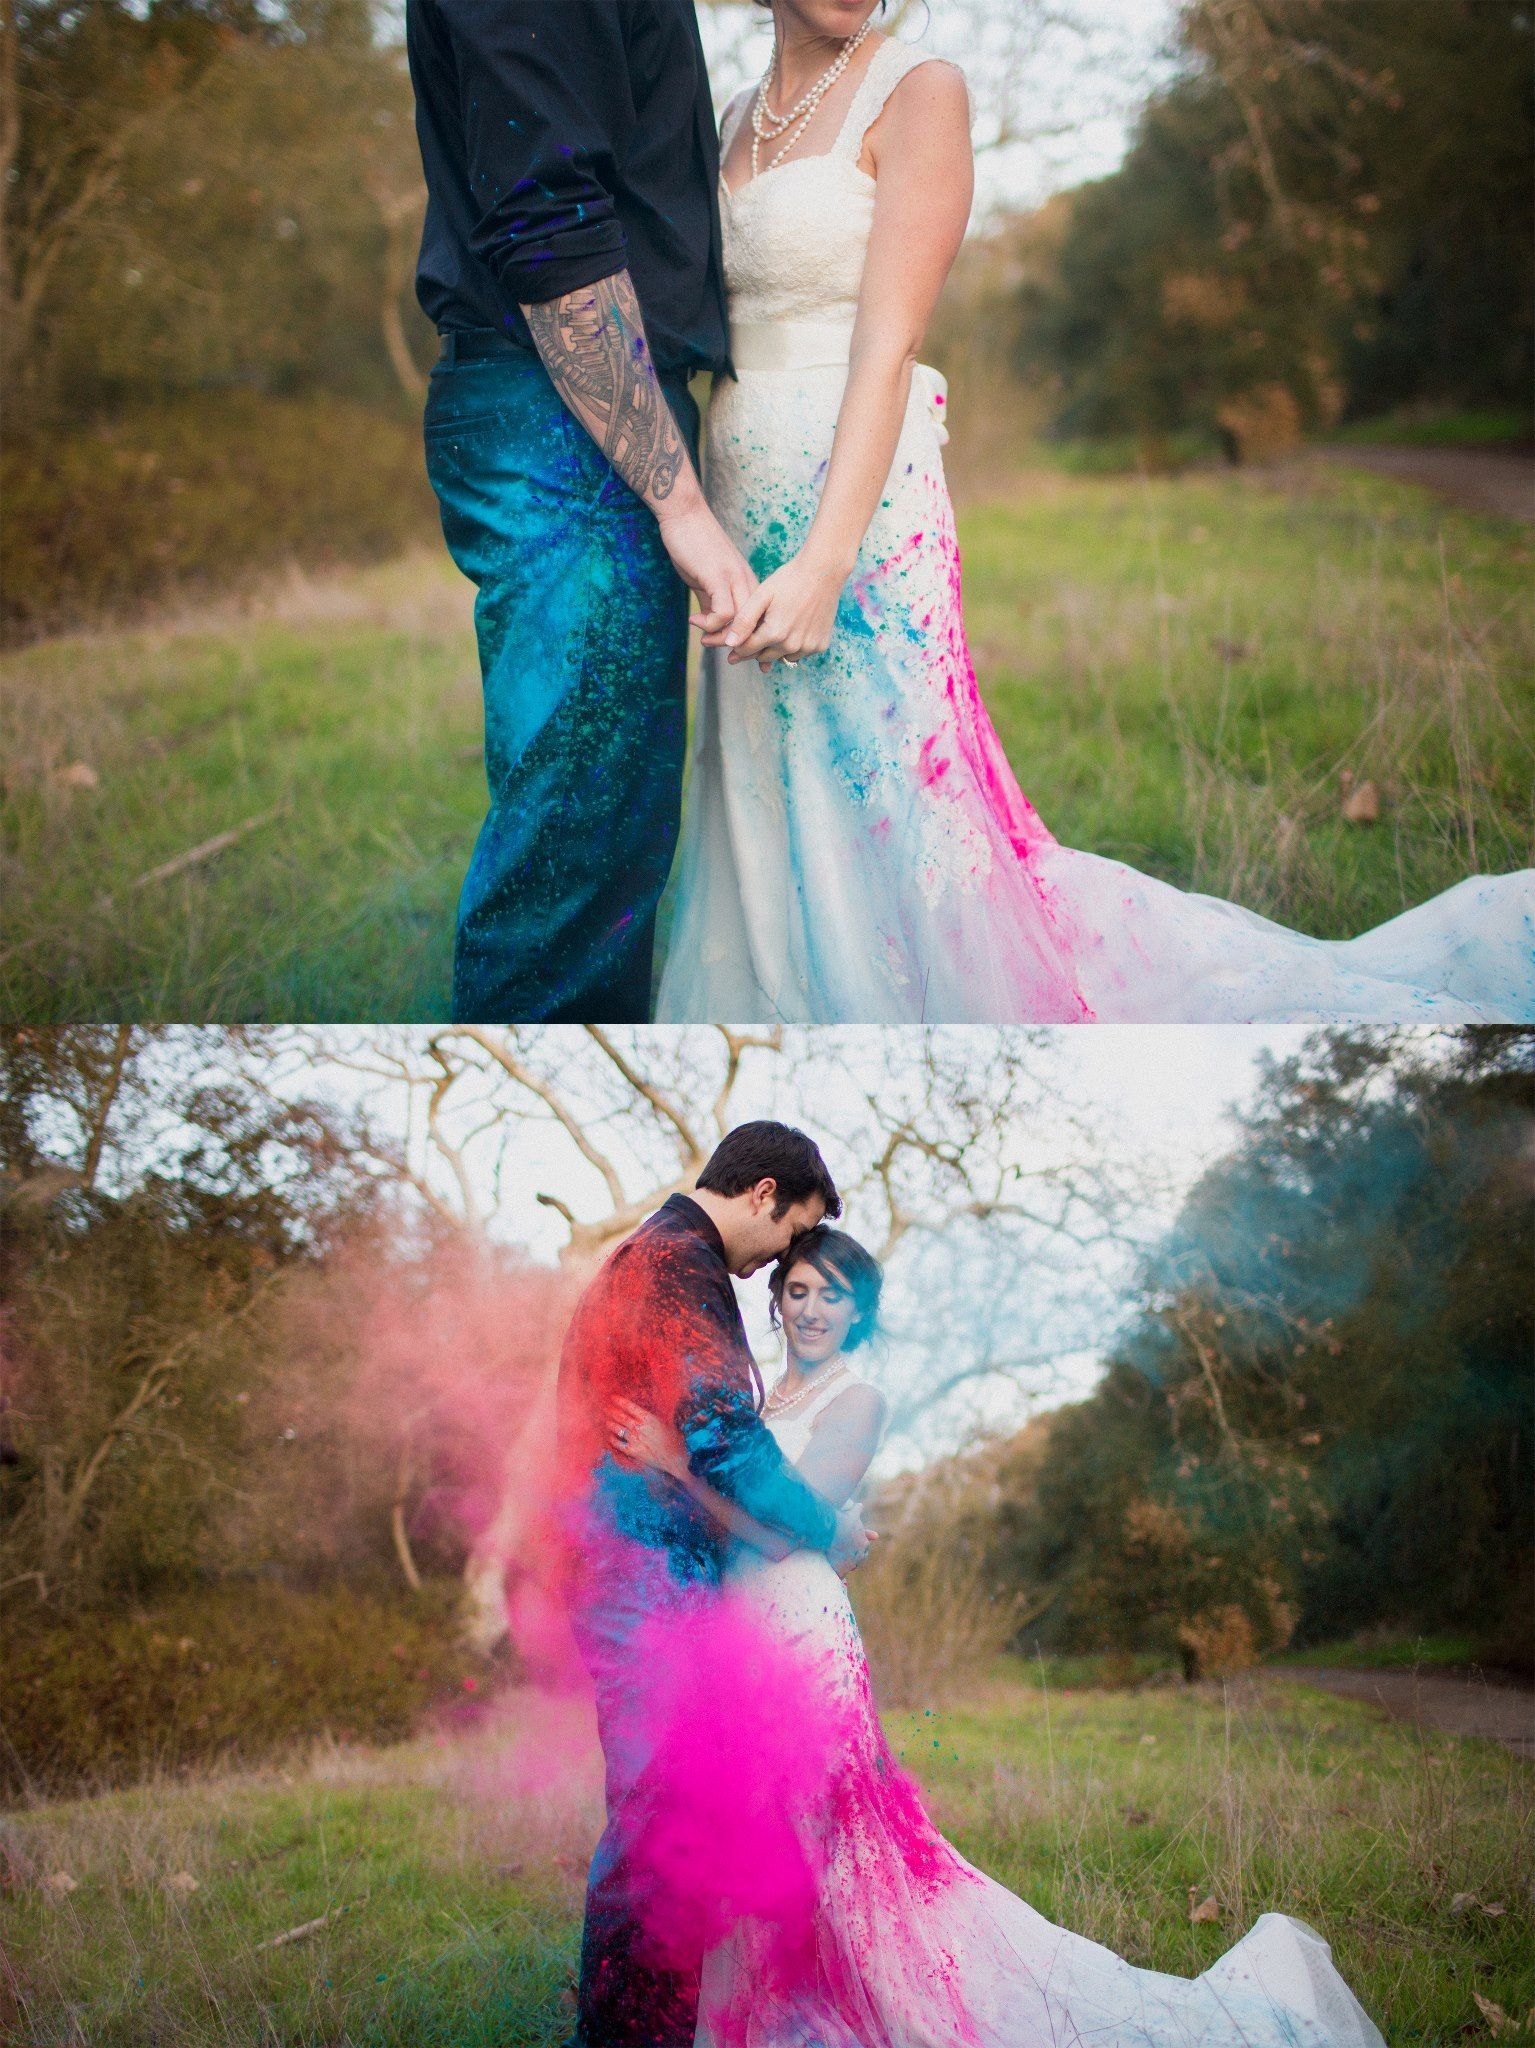 Trash The Dress Shoot. Creative New Way To Have Fun While